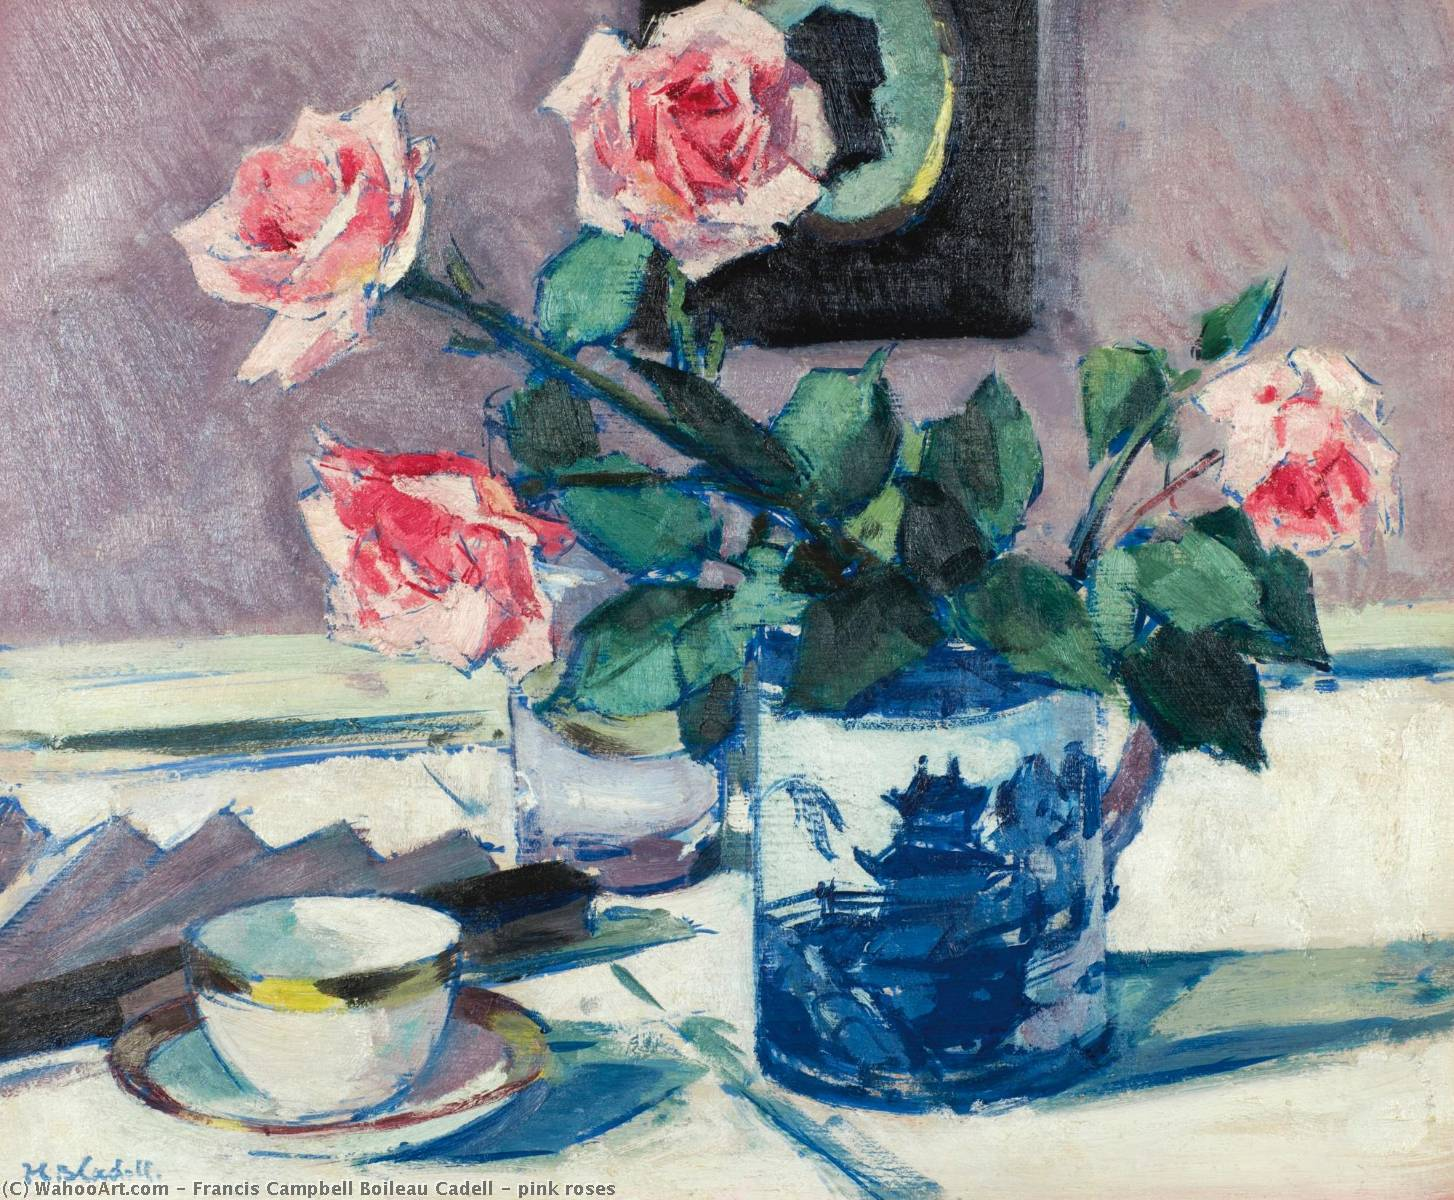 pink roses, Oil by Francis Campbell Boileau Cadell (1883-1937)